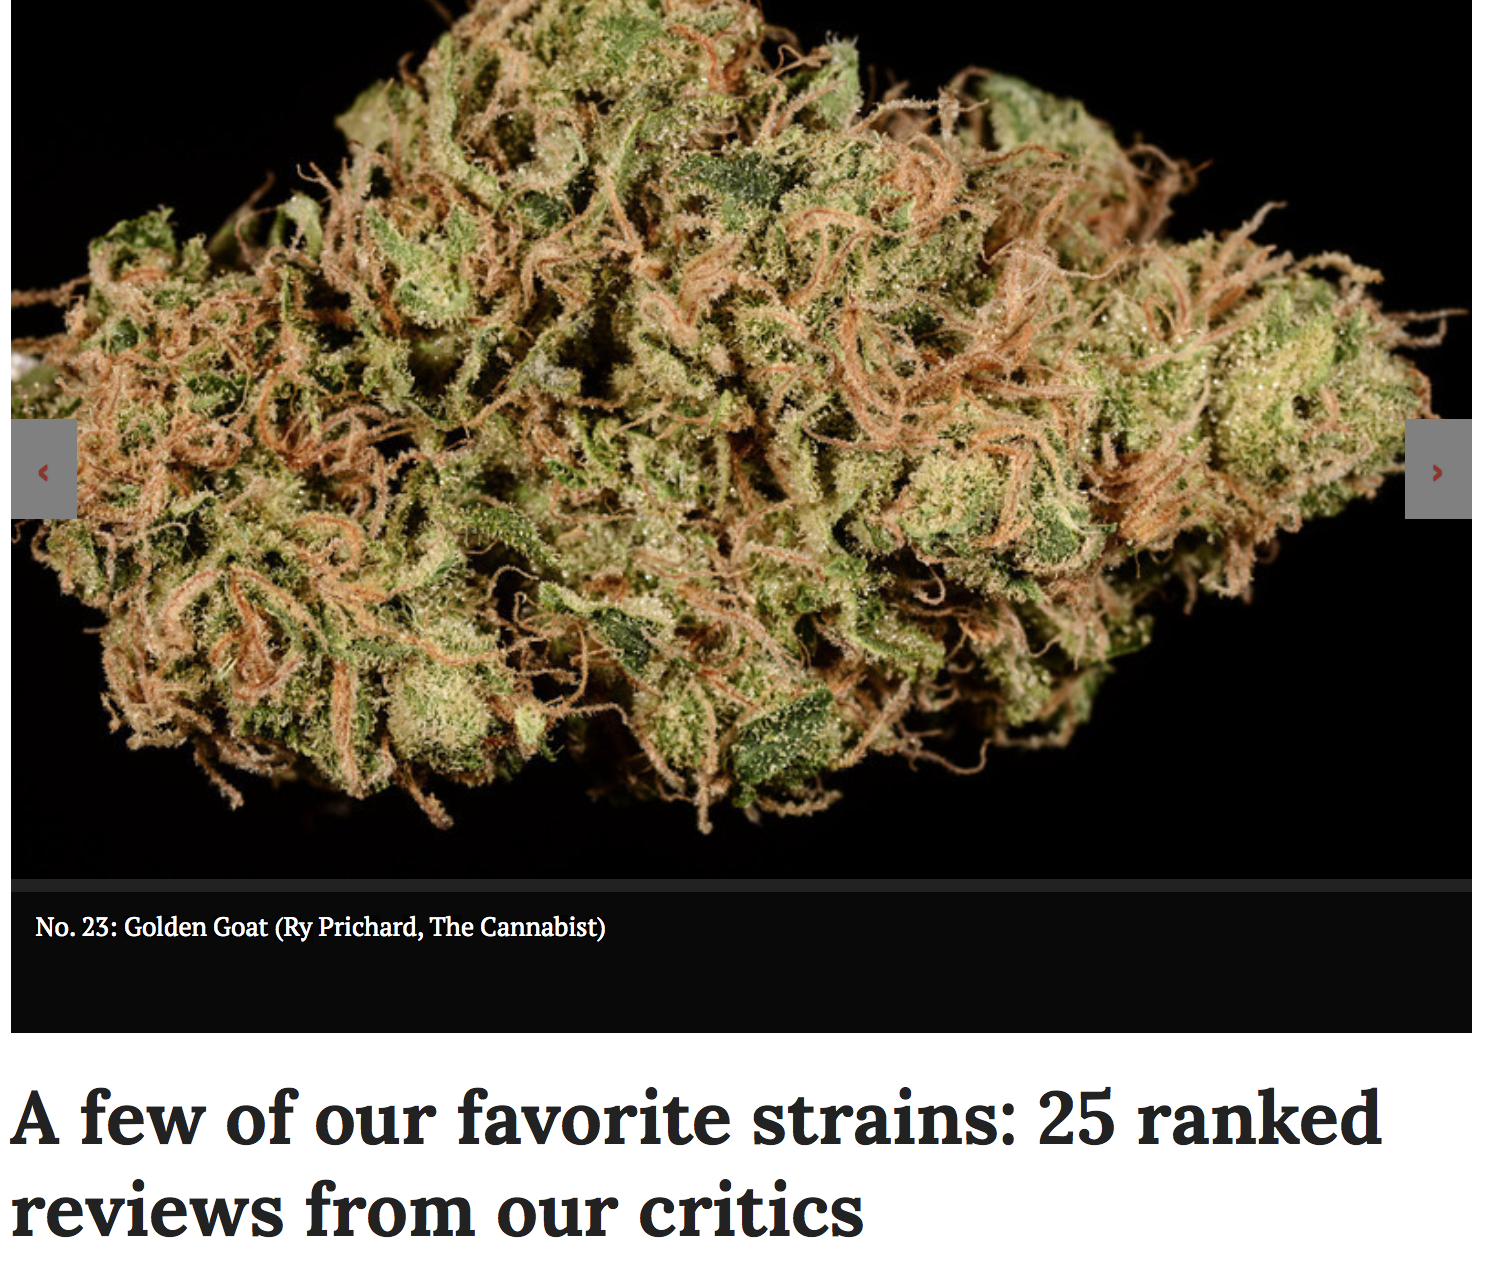 """""""A few of our favorite strains: 25 ranked reviews from our critics"""" - The Cannabist - May '14"""